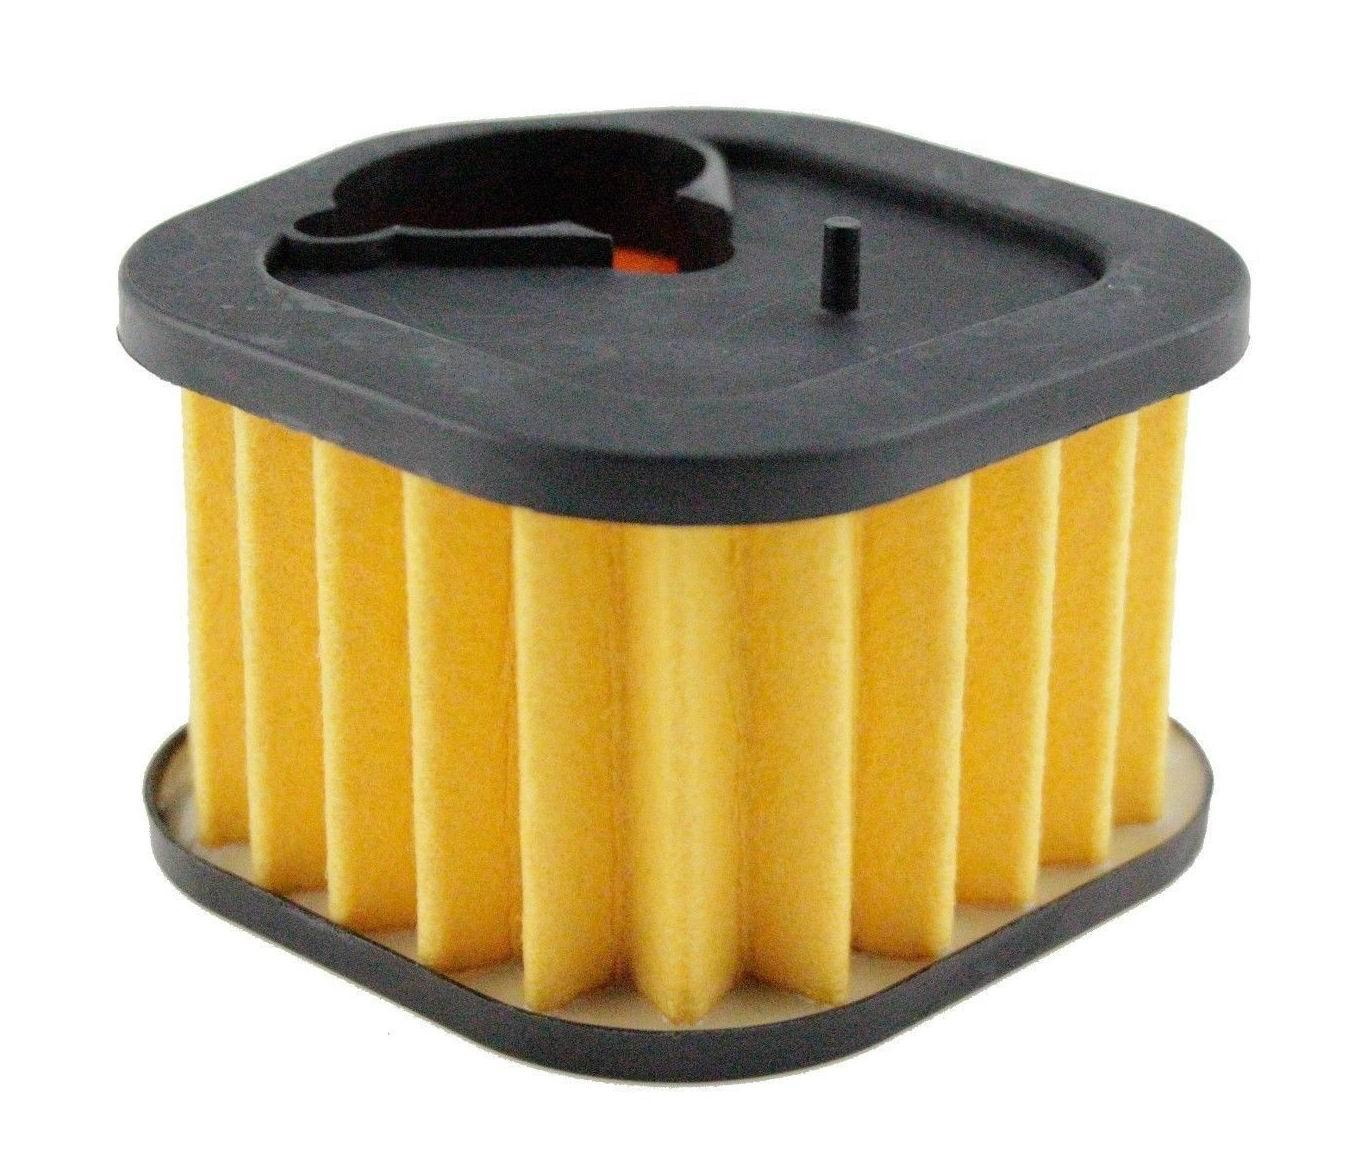 Air Filter Husqvarna 385, 385XP, 390, 390XP